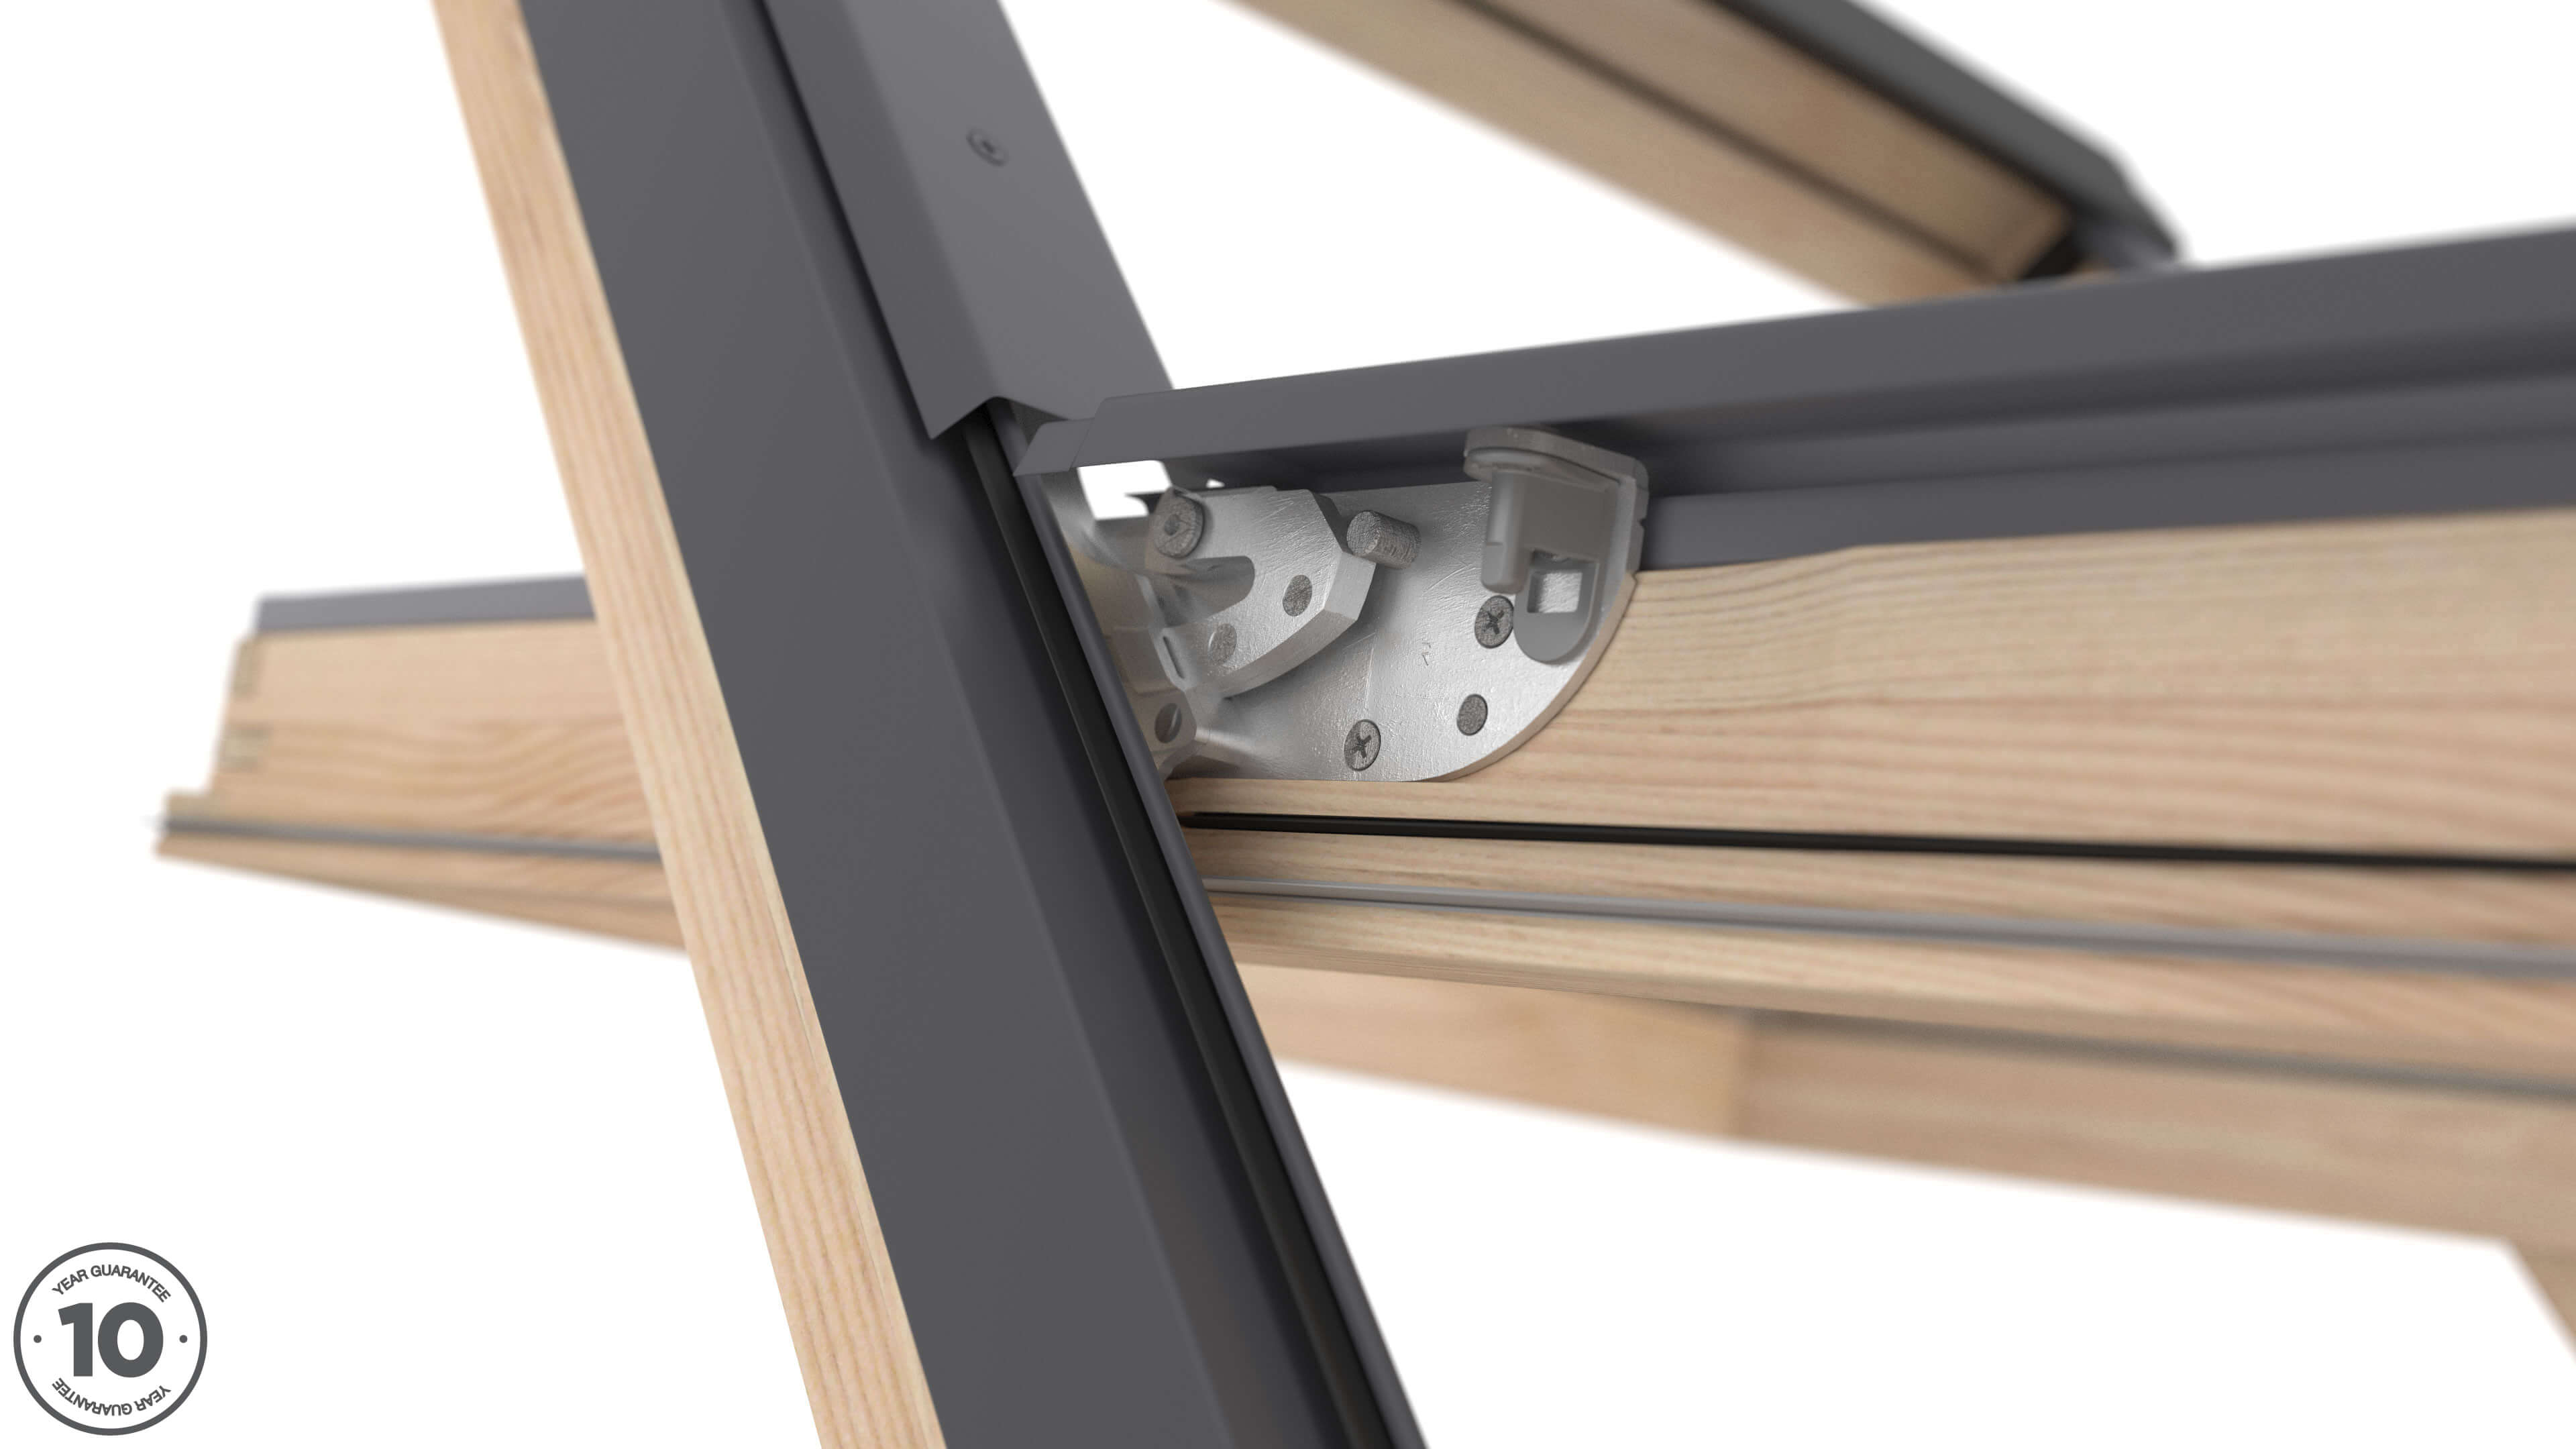 Durable hinges